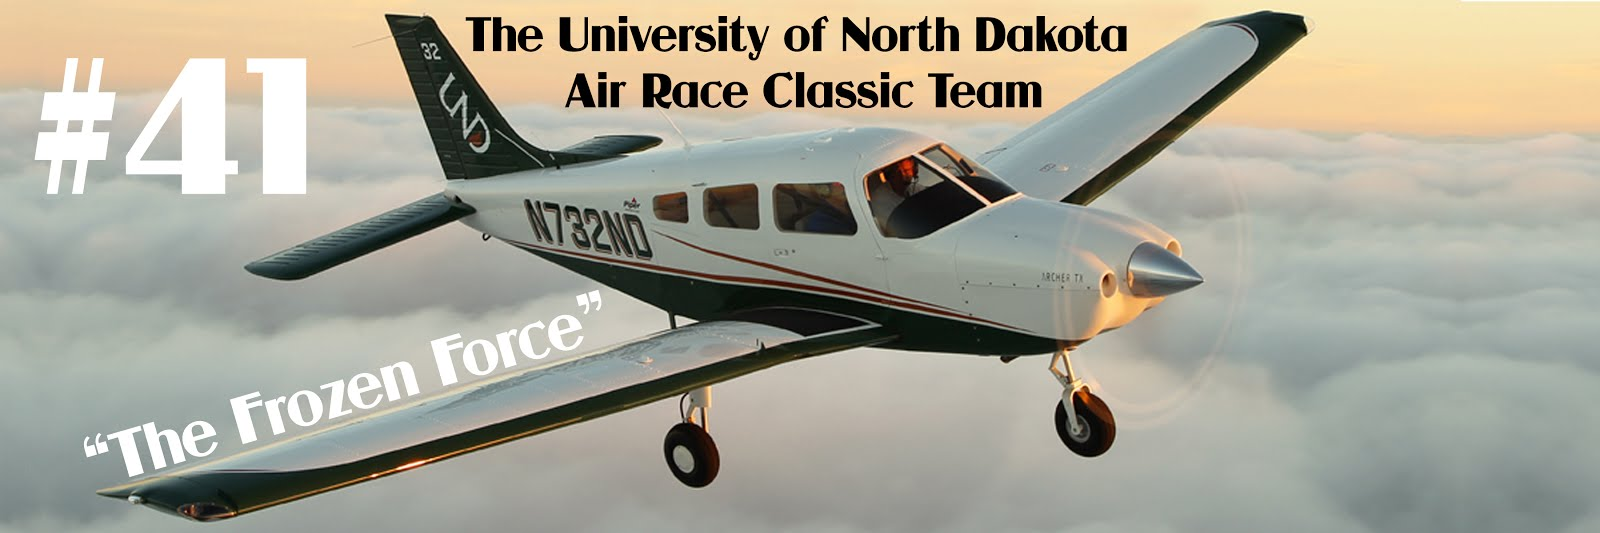 The University of North Dakota Air Race Classic Team